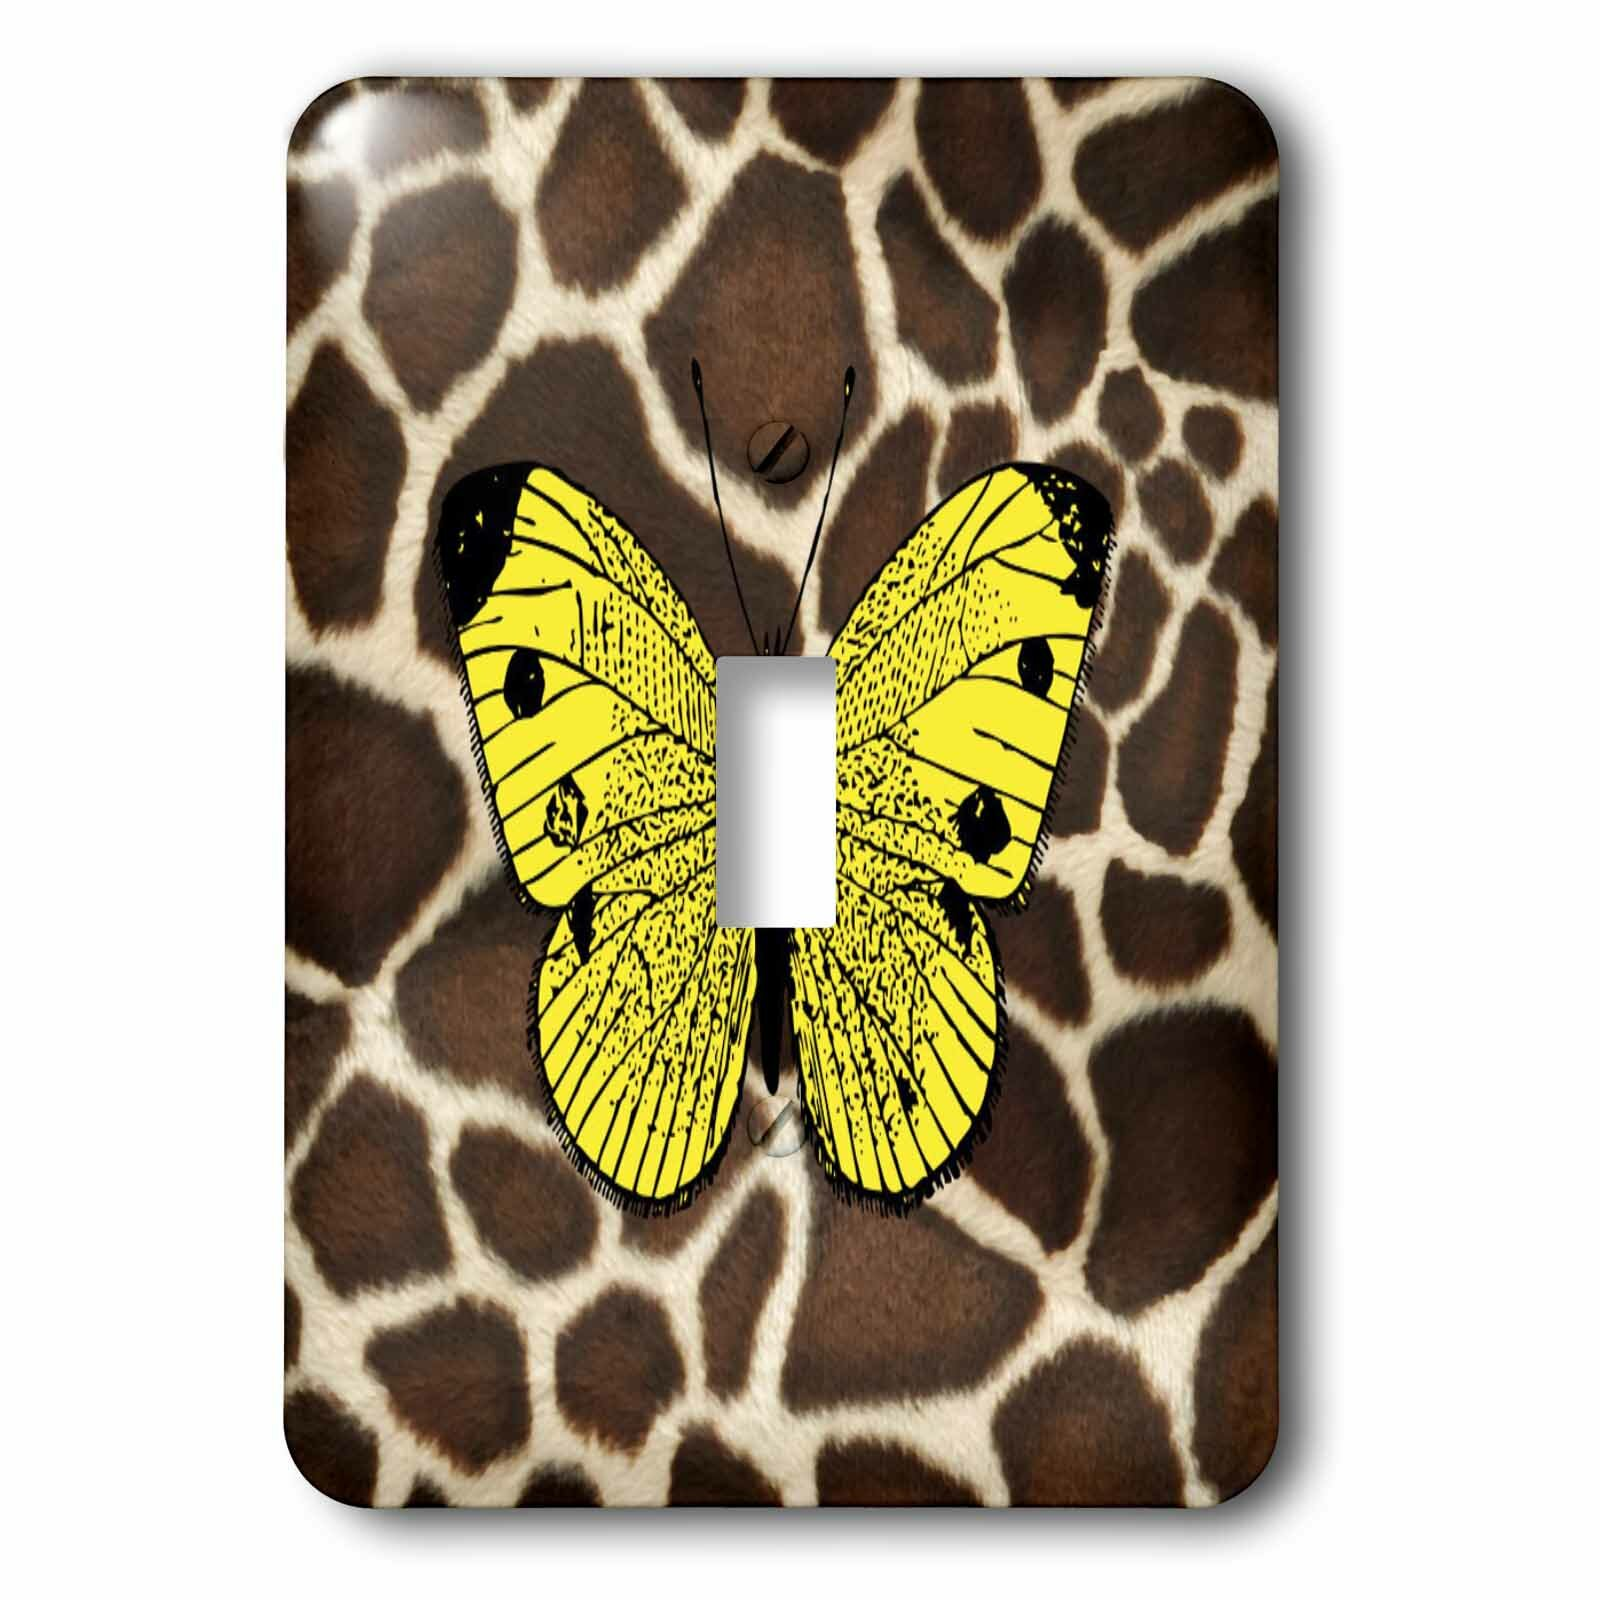 3drose Butterfly On Giraffe 1 Gang Toggle Light Switch Wall Plate Wayfair